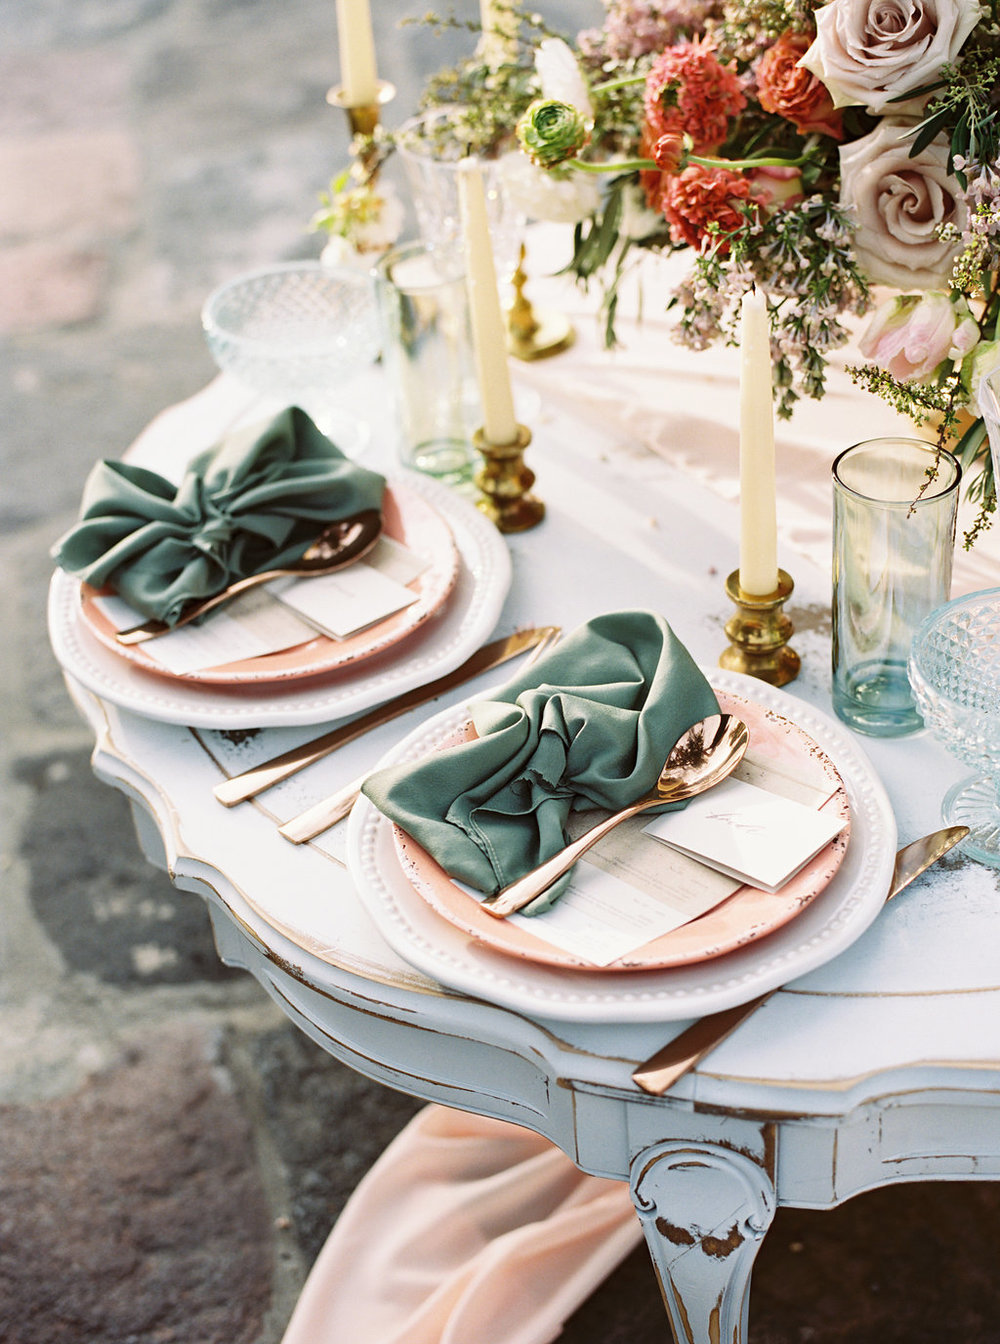 Gorgeous french chateau inspired wedding tablescape with pastel table napkins, rose gold tableware, and flowy peach silk chiffon table runner